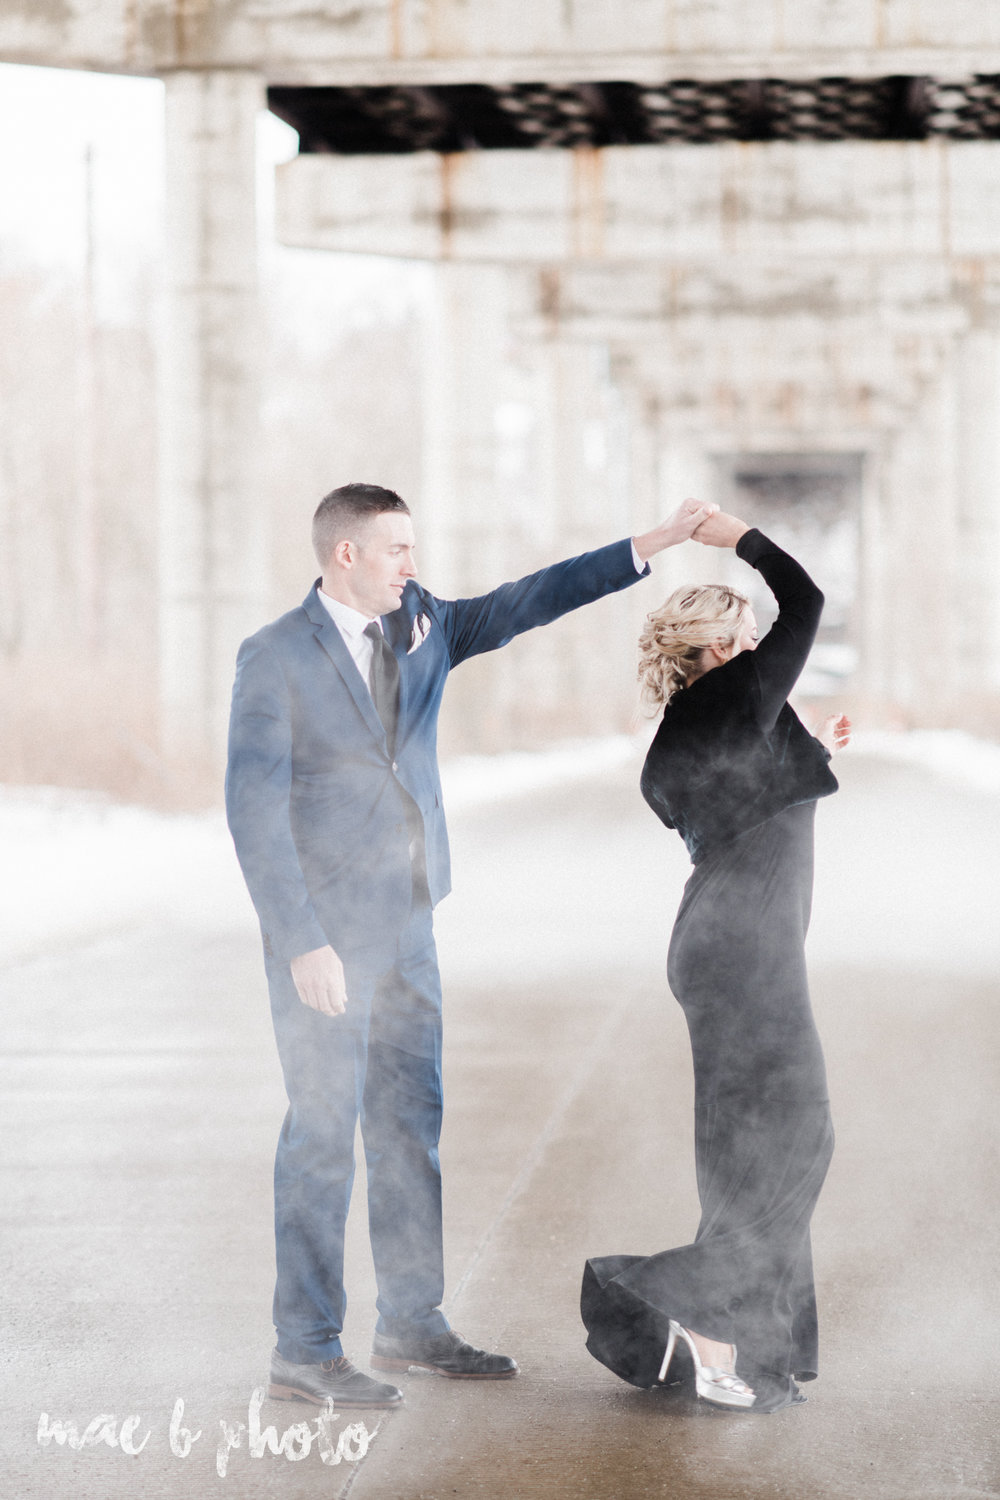 paige and cale's personalized winter glam engagement session at the butler institute of american art and downtown youngstown in youngstown ohio photographed by youngstown wedding photographer mae b photo-37.jpg